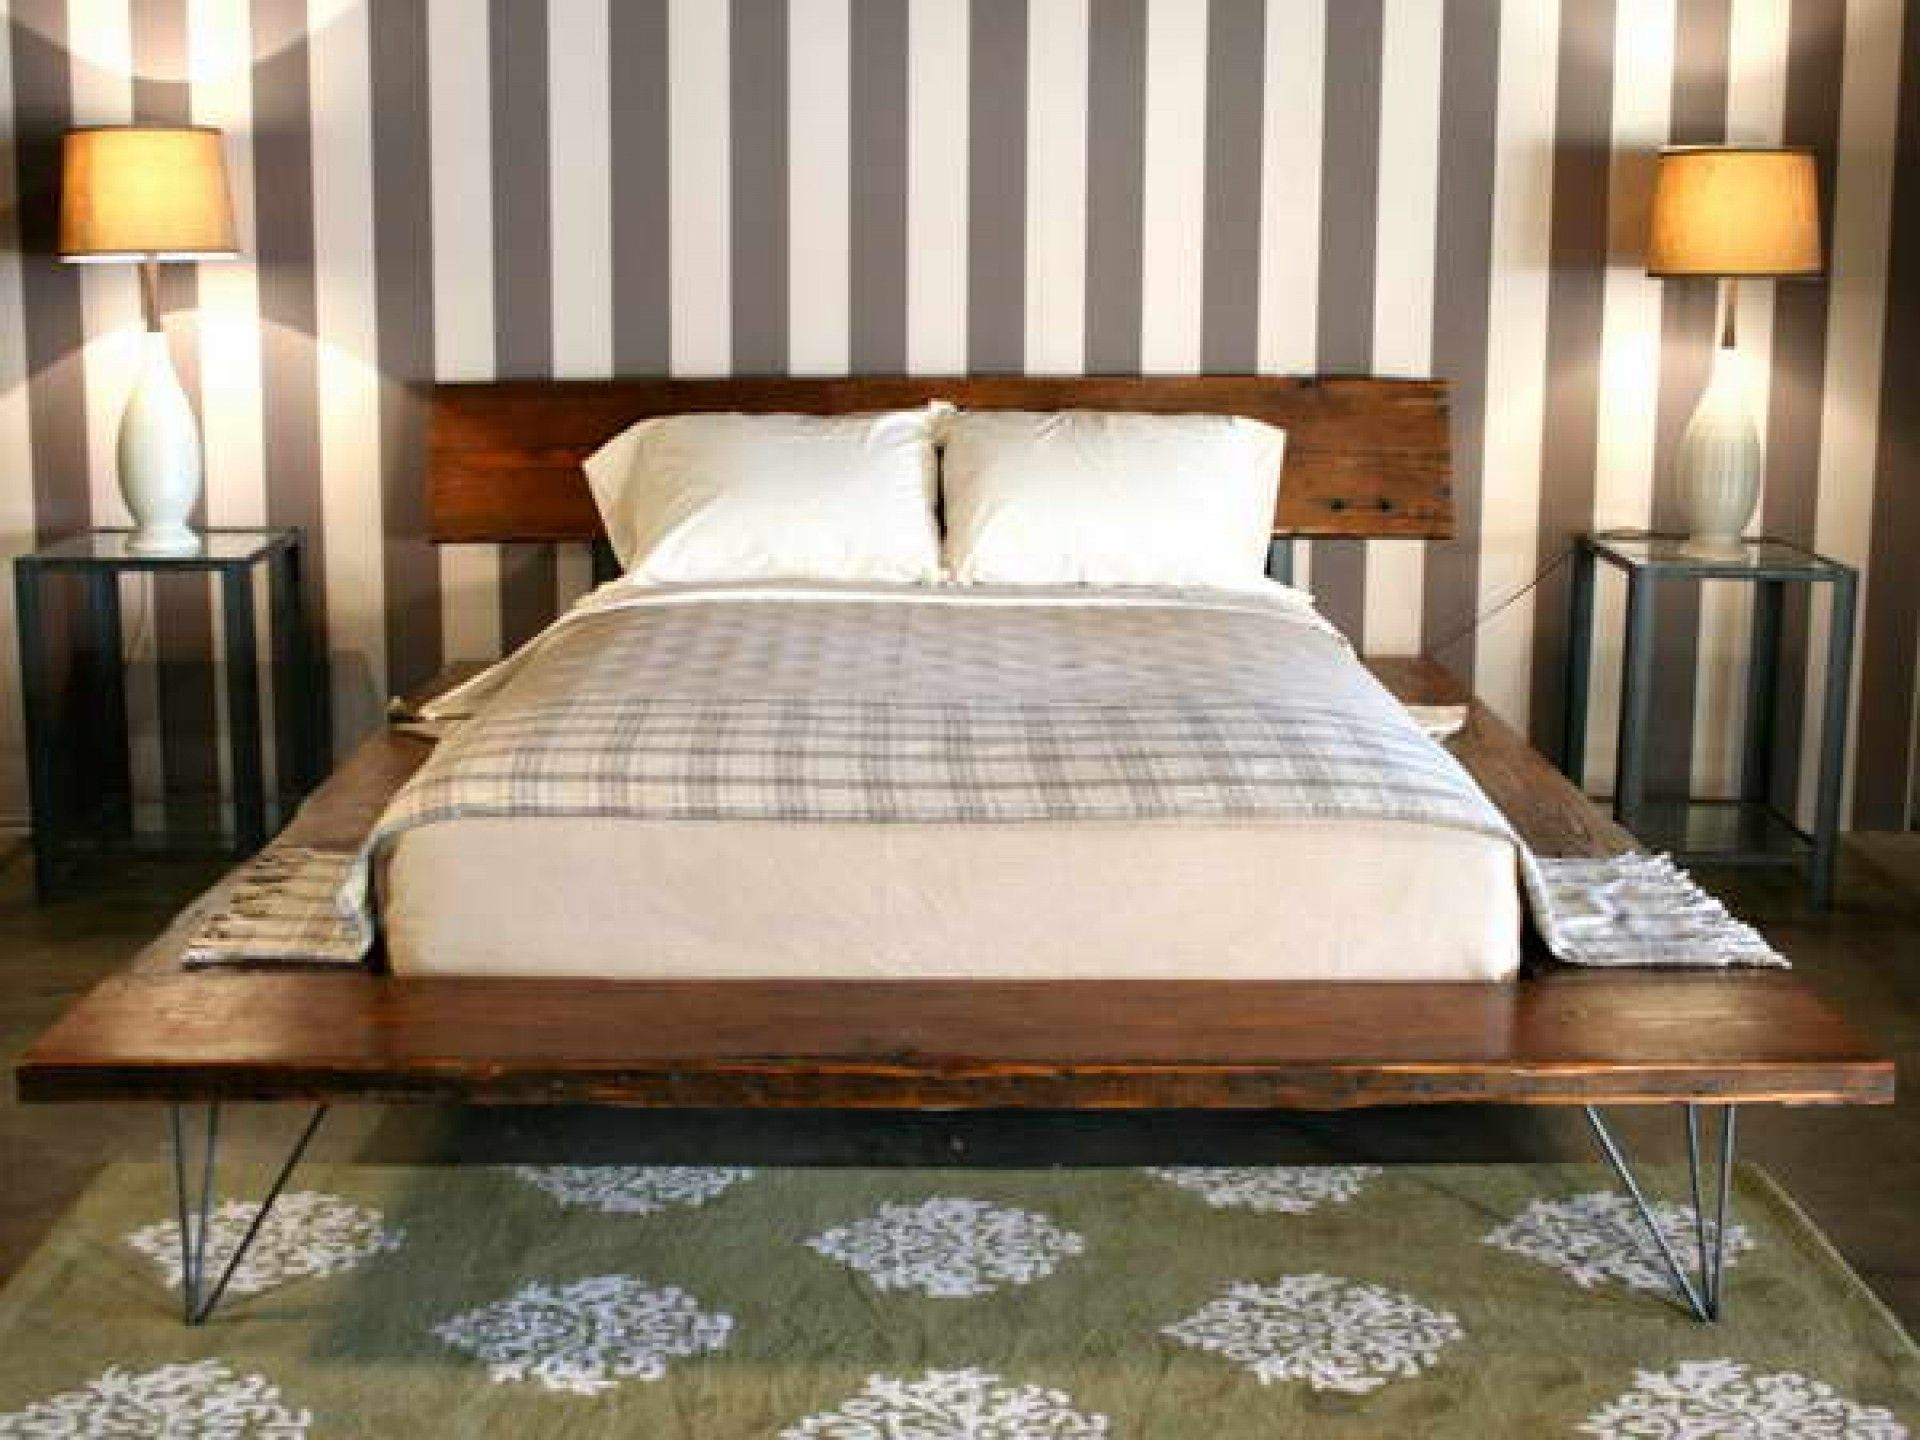 Diy Homemade Wooden Frame With Unique Desk And Iron Based Legs Also Bed Wood Frame And Wrought Iron Bed Frames The With Images Bed Frame Diy Bed Frame Queen Bed Frame